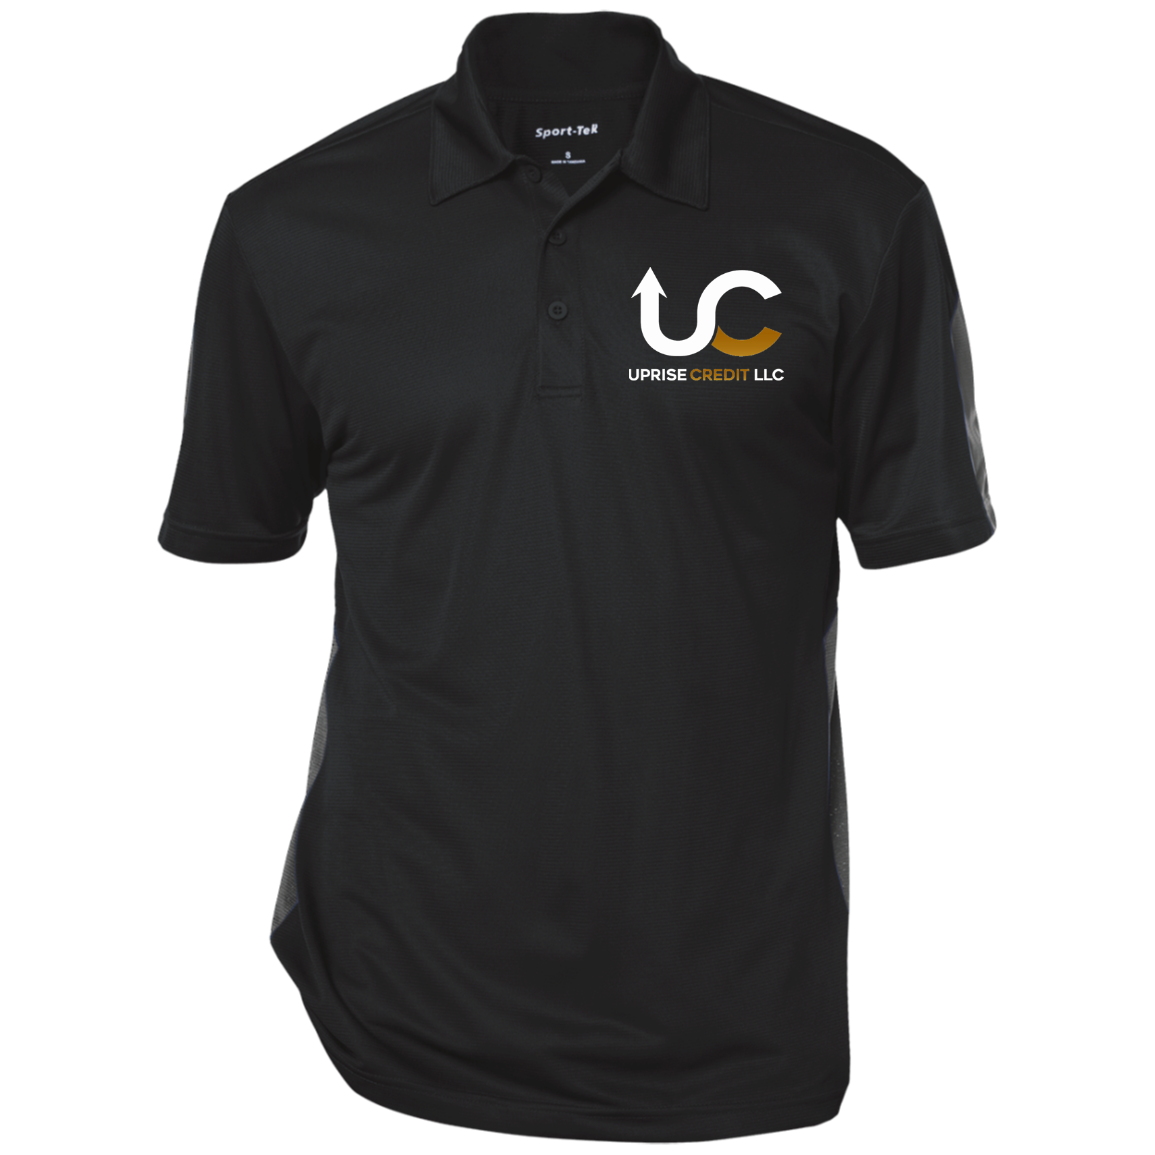 Uprise Credit Performance Textured Three-Button Polo